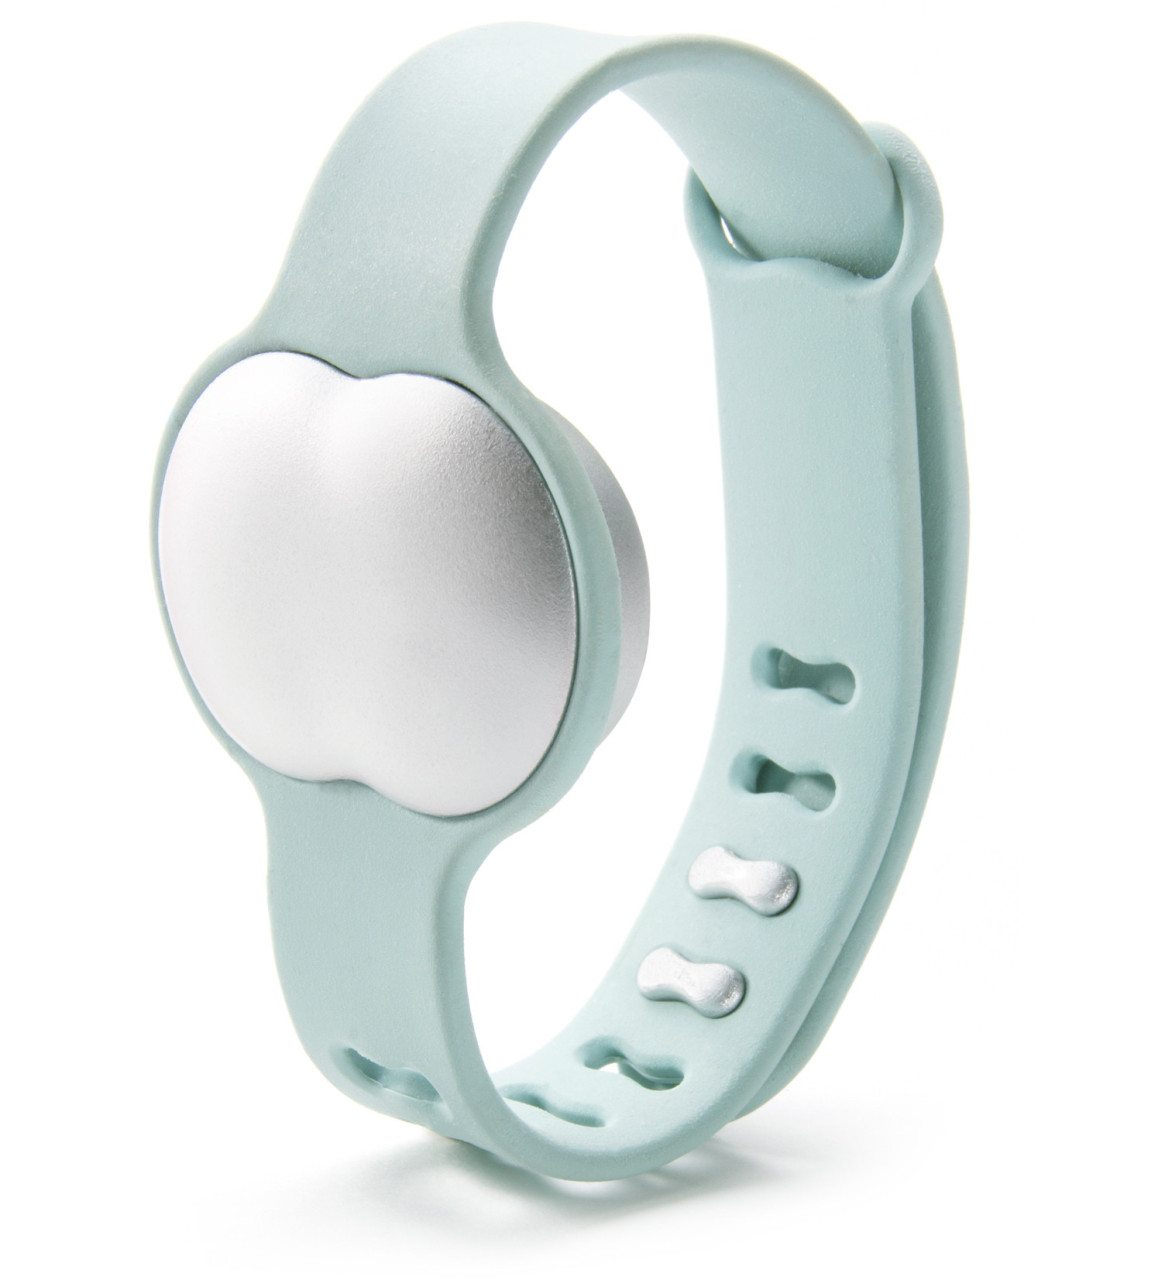 ava a new wearable designed to help families conceive 2 - Ava, a new wearable designed to help families conceive